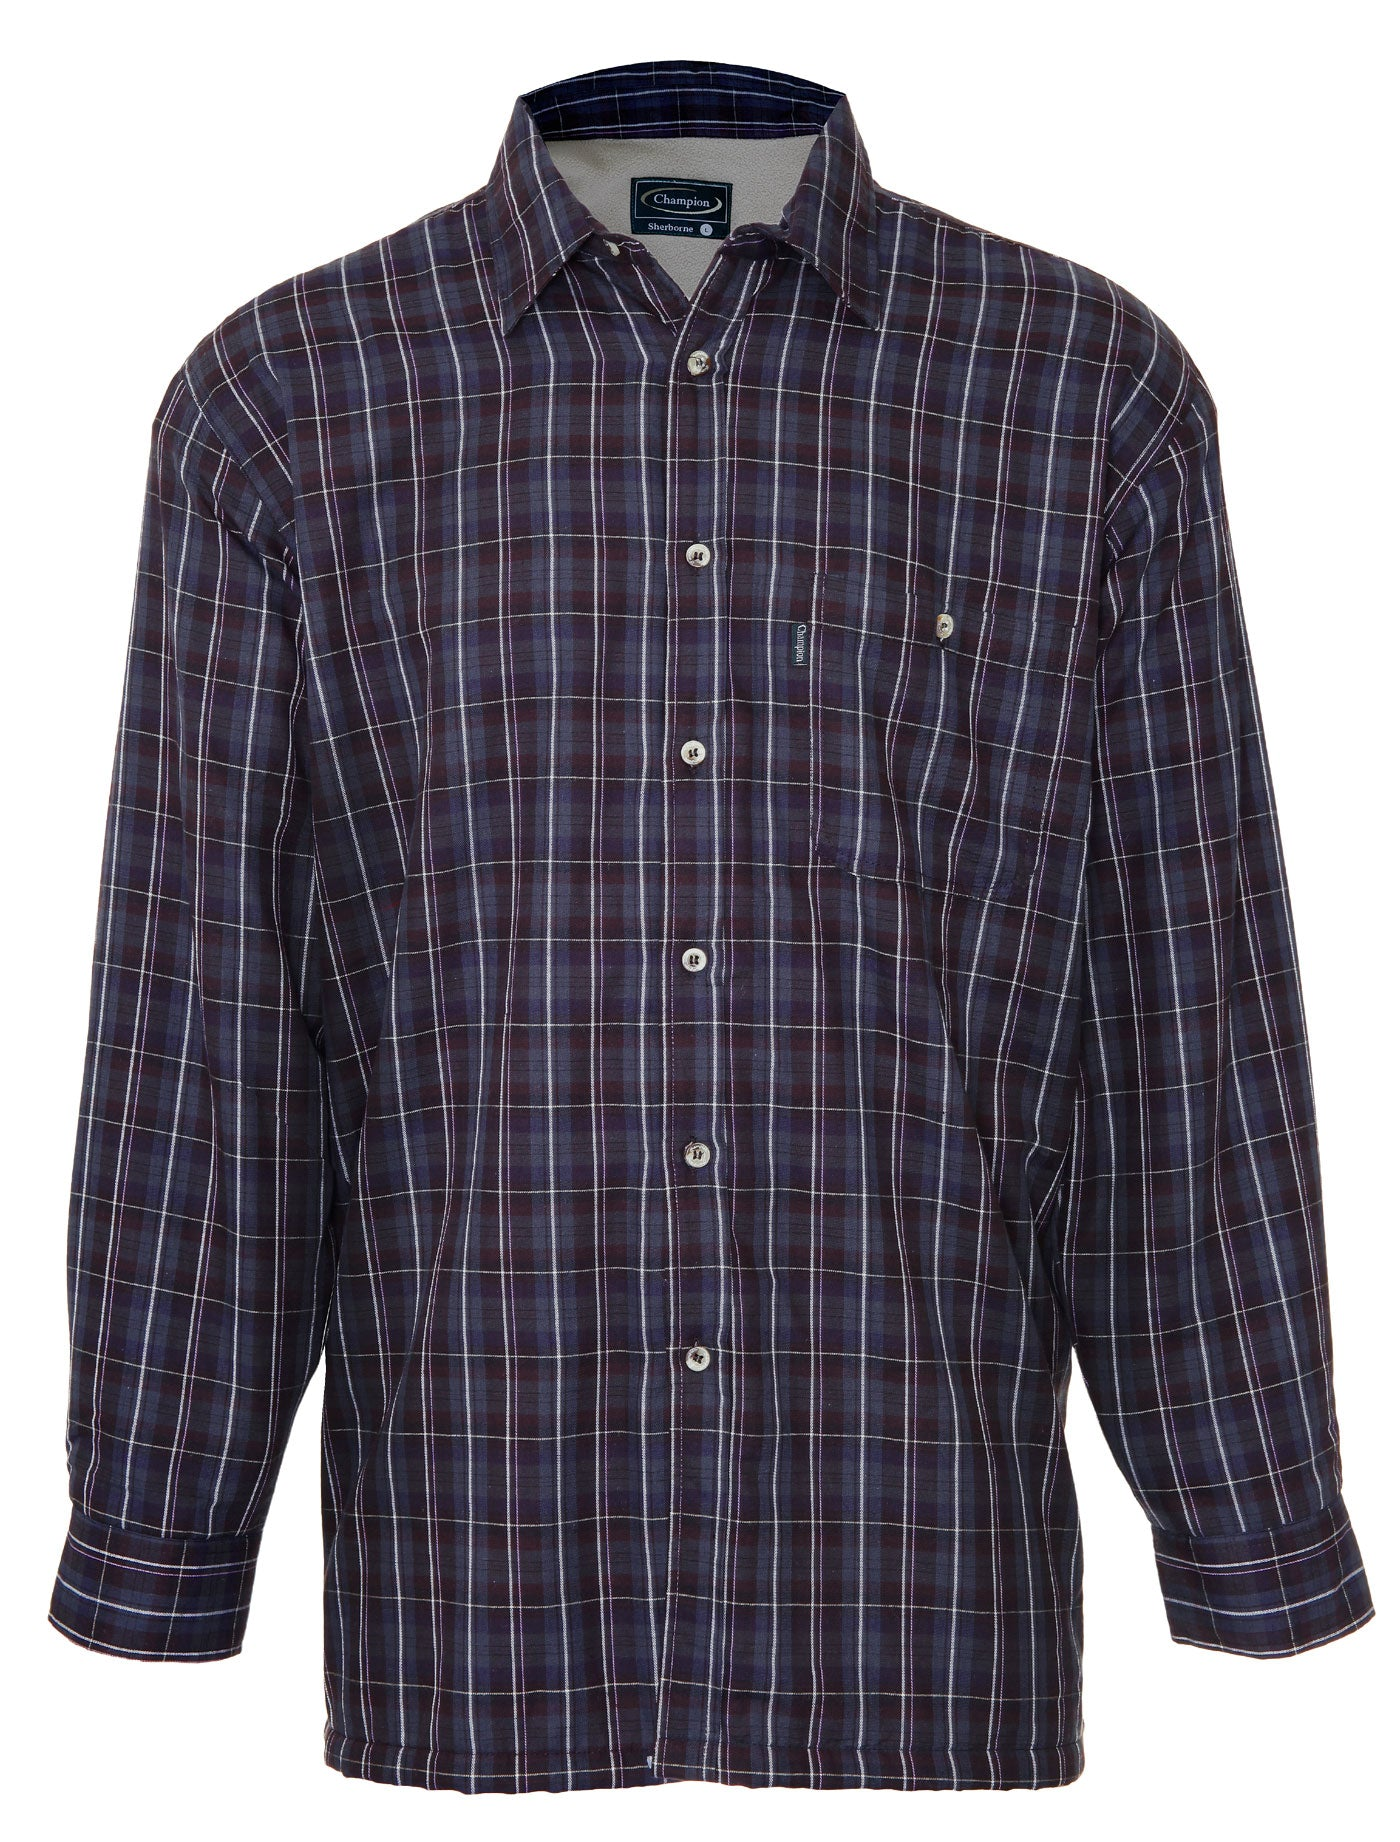 Champion Sherborne Shirt Warm Lined Shirt  A country plaid check shirt with a micro fleece lining.